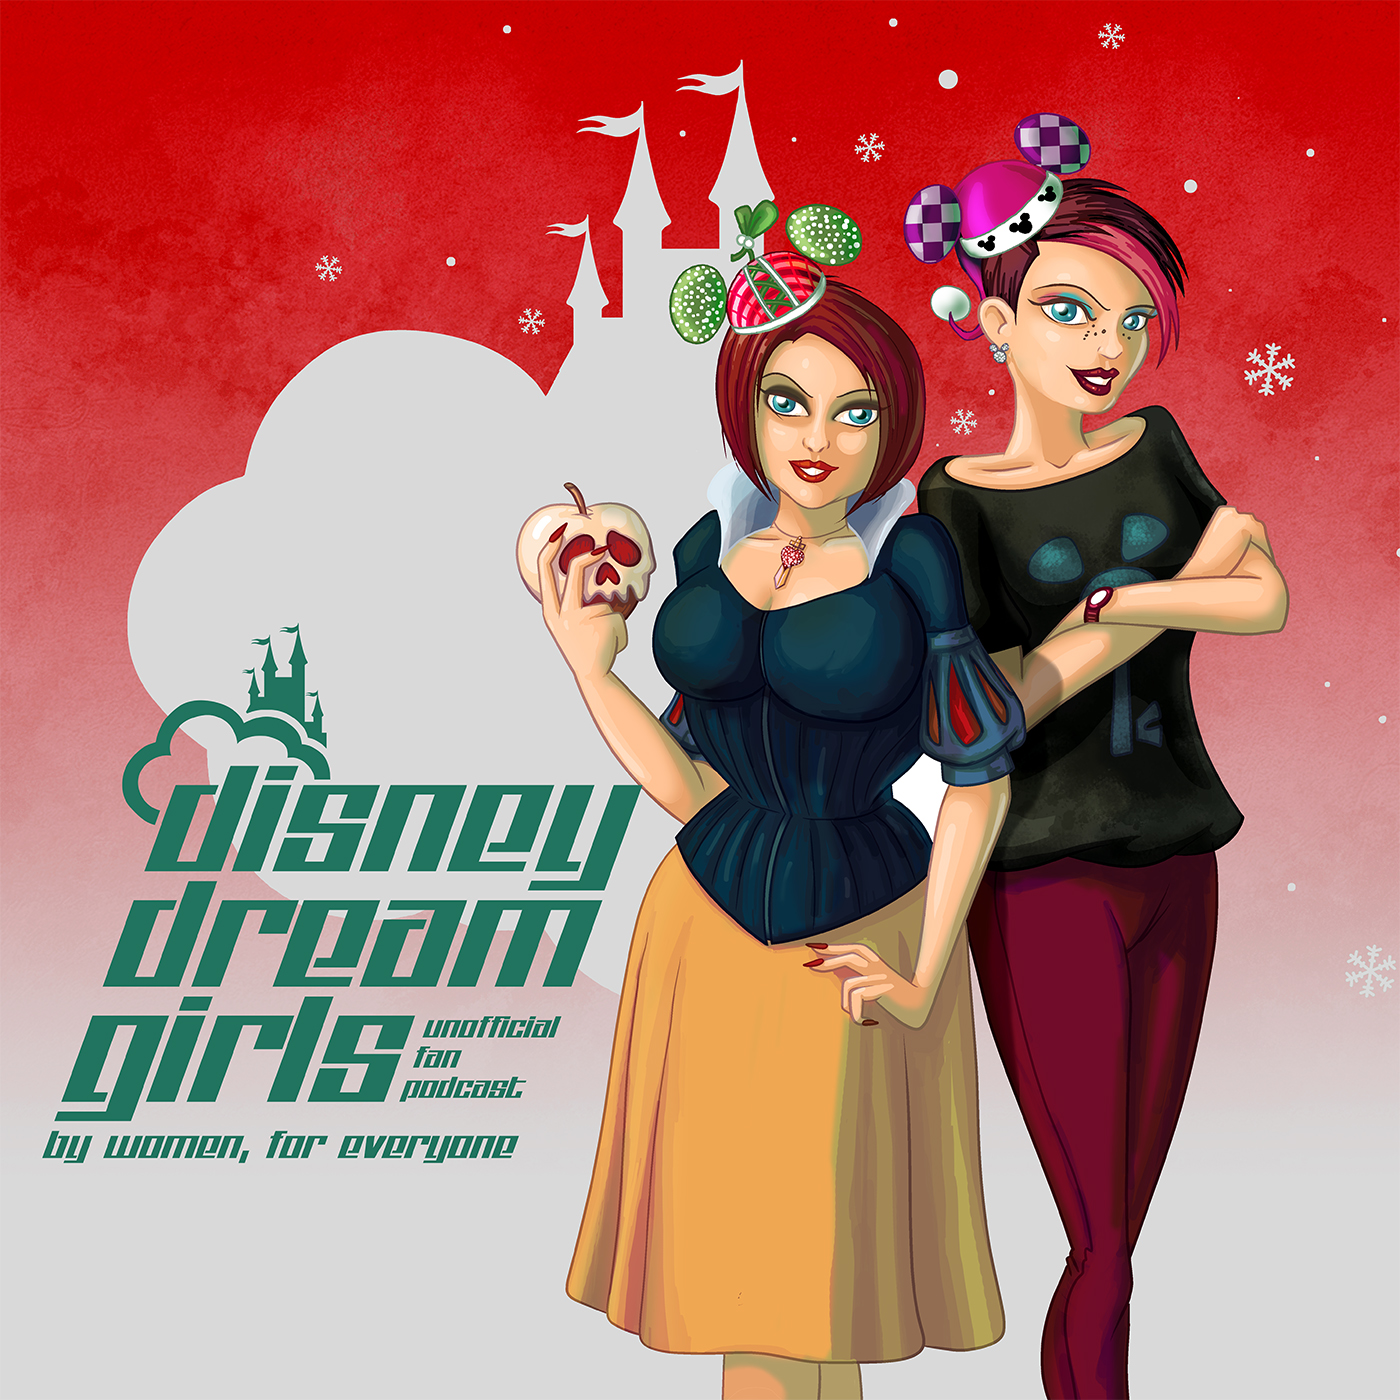 Disney Dream Girls 083 - Minxmas with the Mighty Men of Mouse Podcast